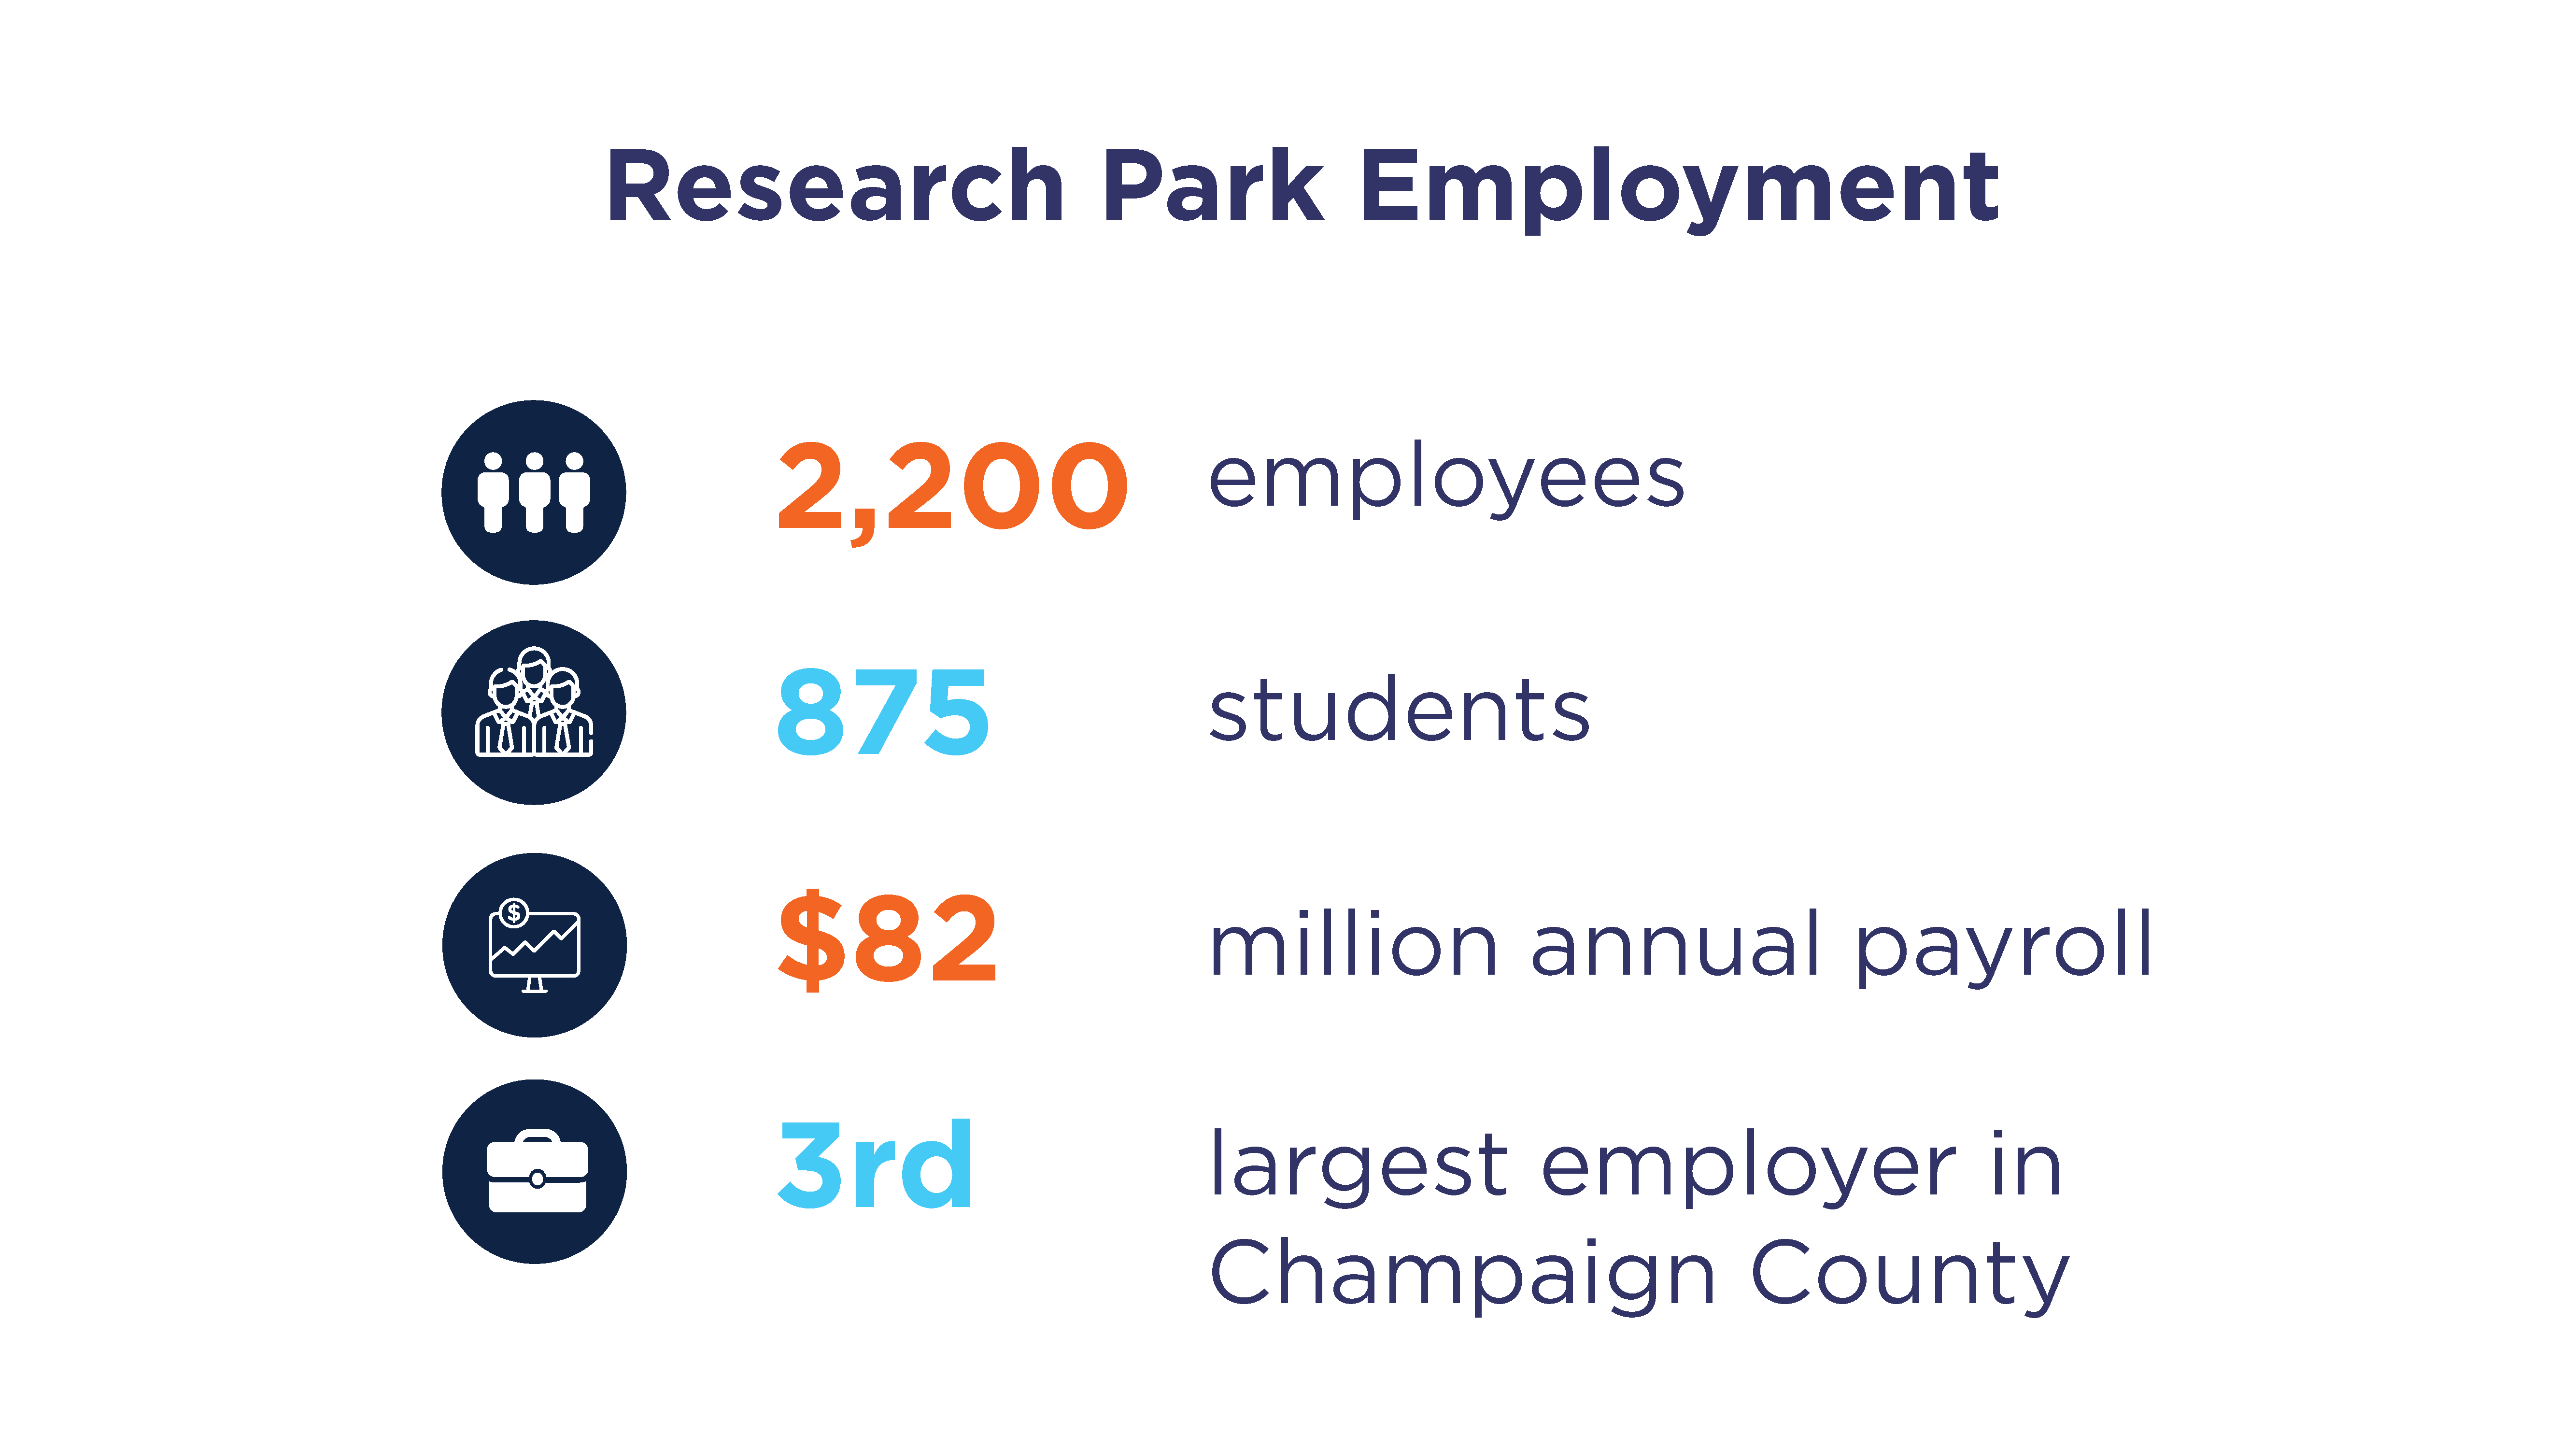 Research Park Employment